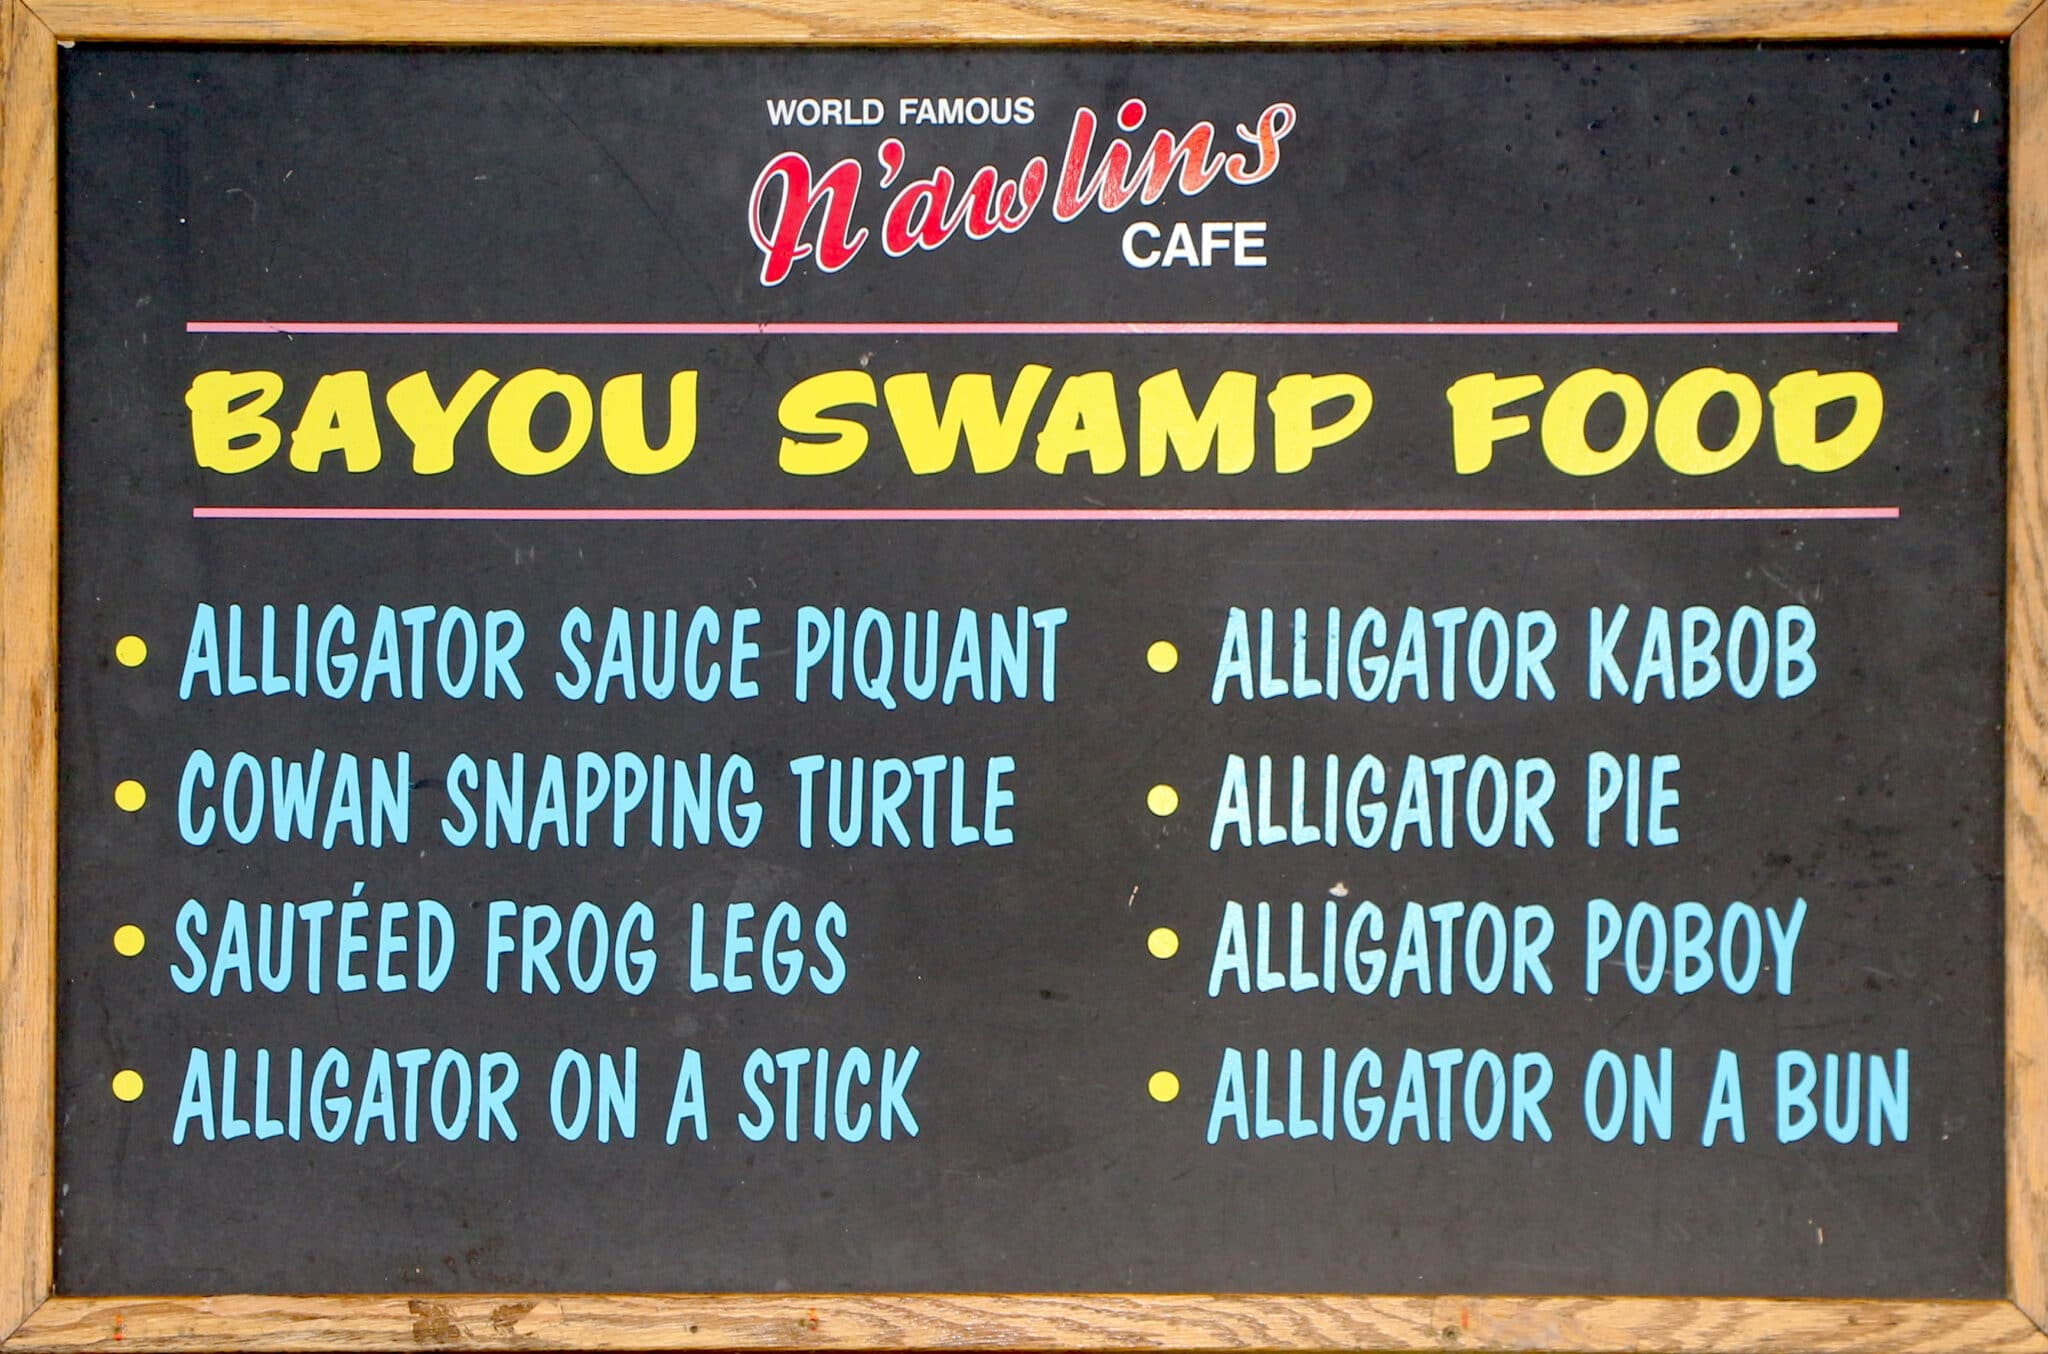 Swamp Food New Orleans - Travel For Food.jpg